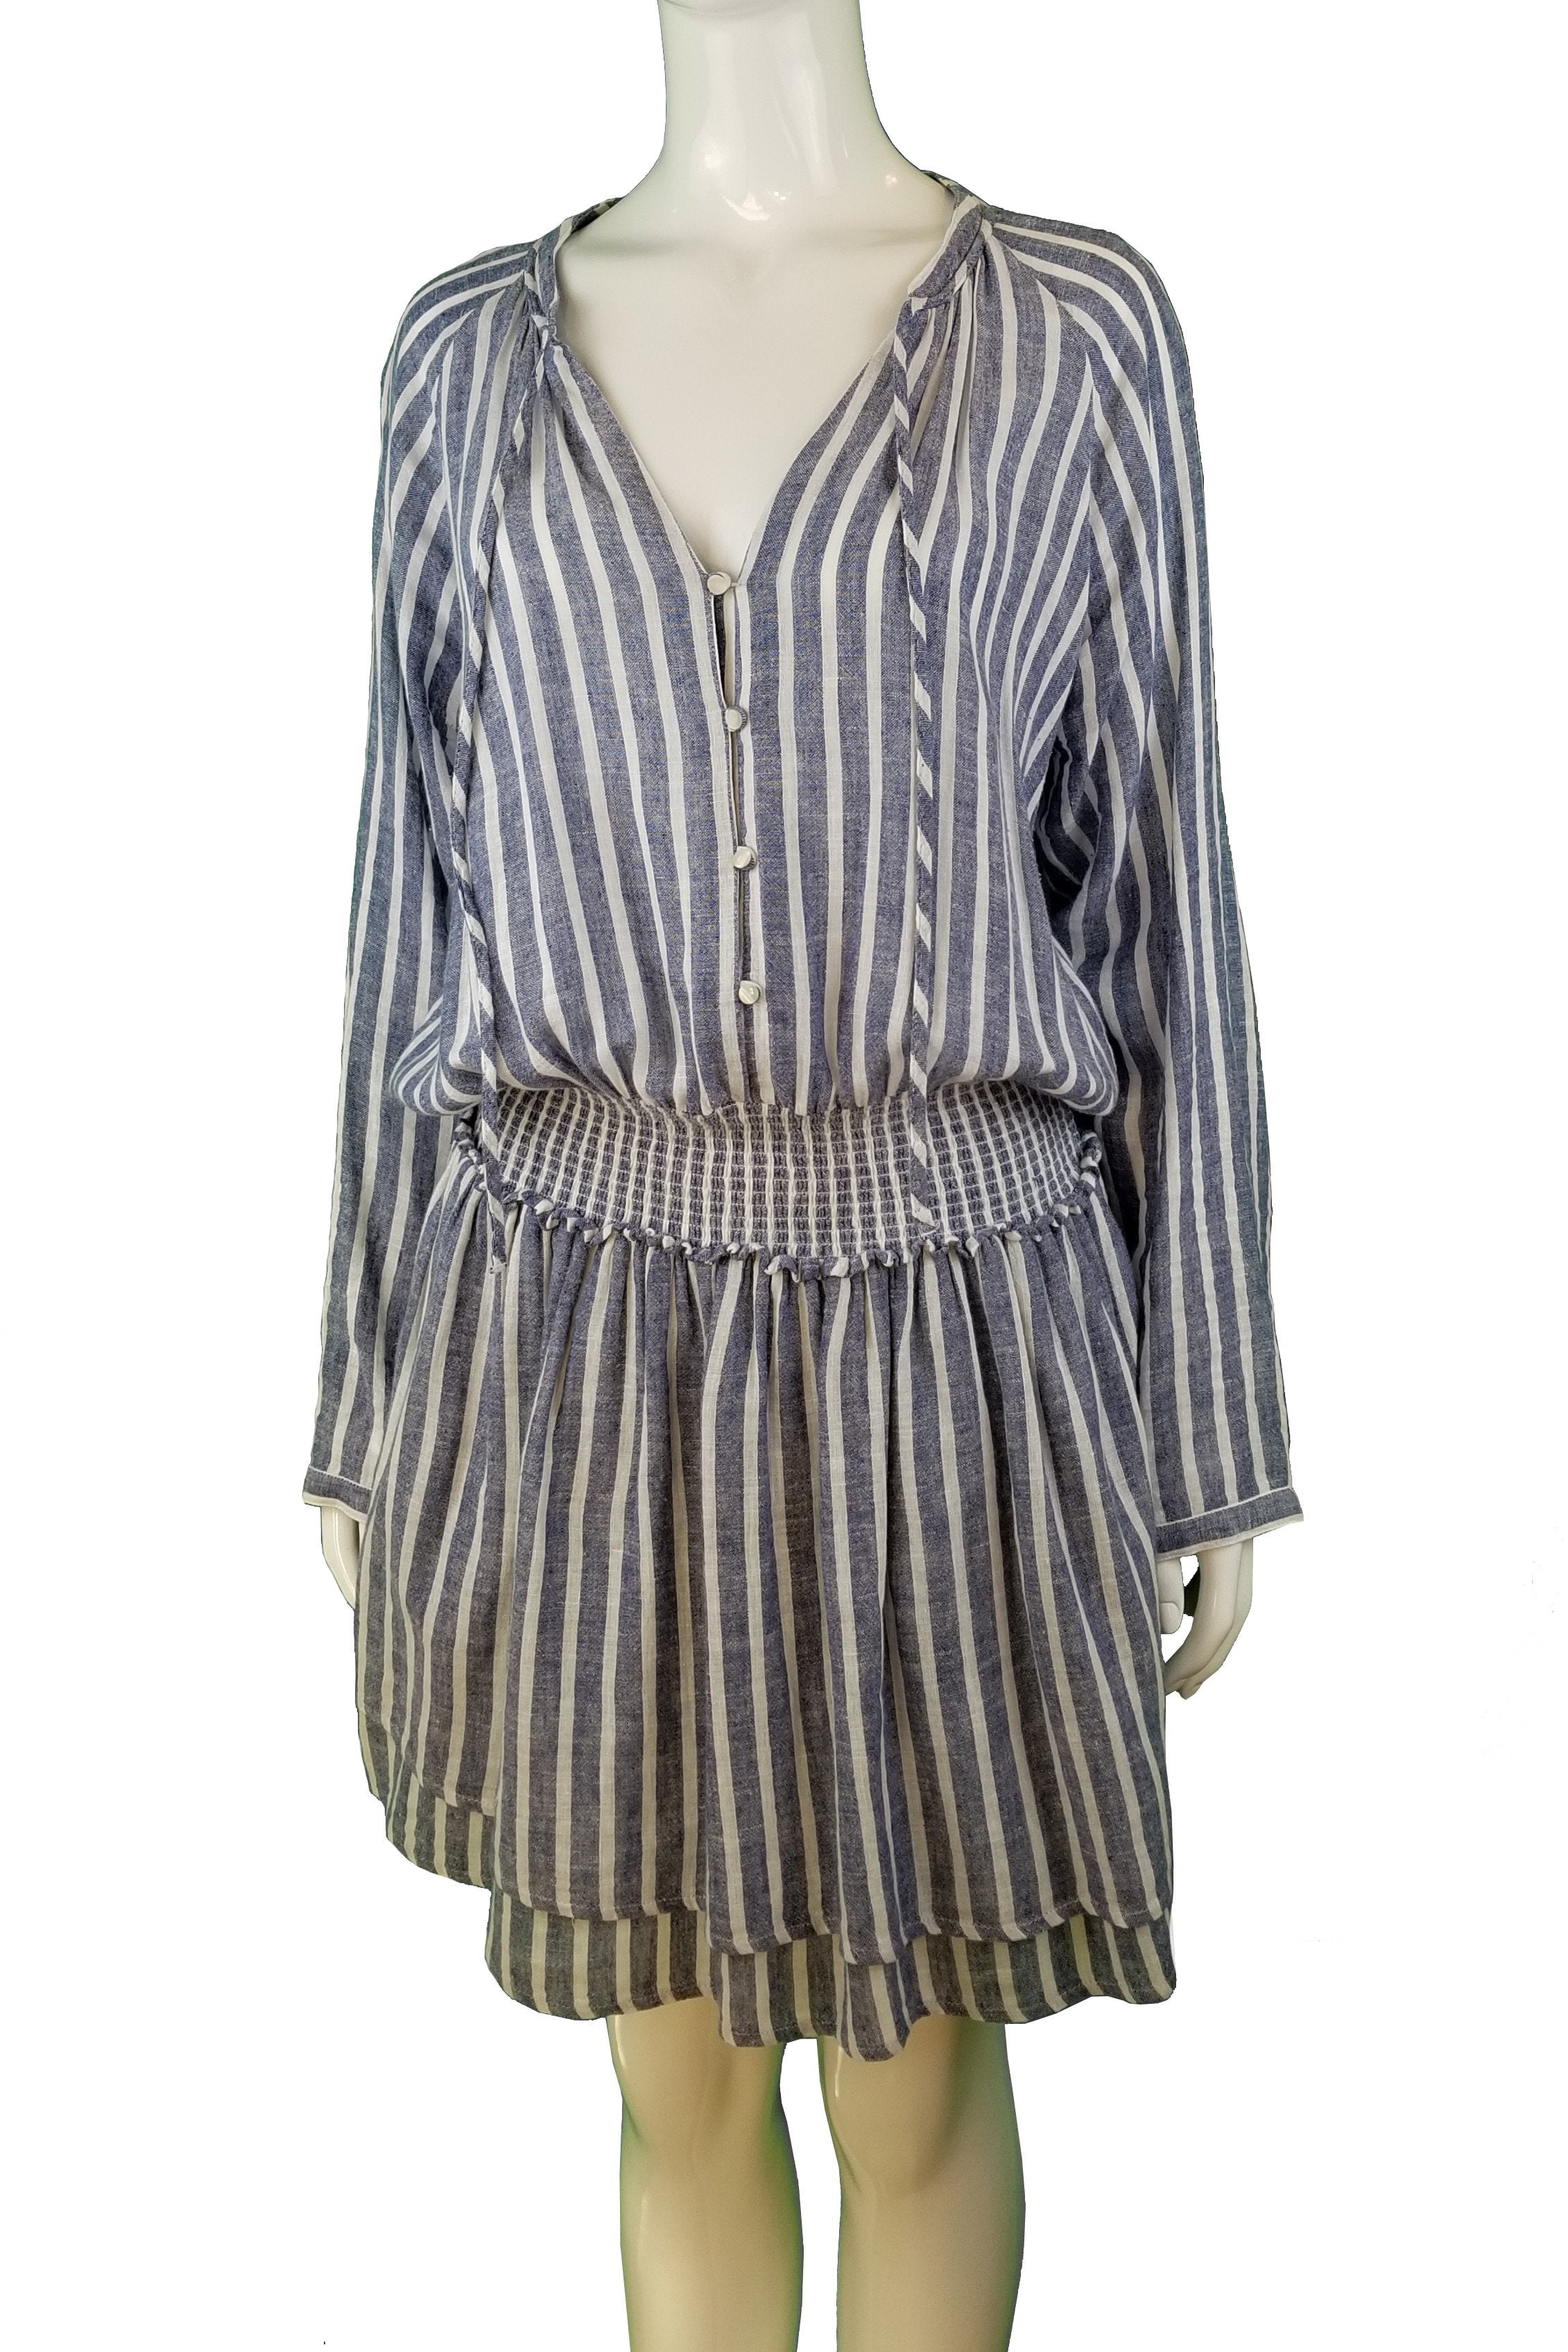 Rails Stripped Long Sleeve Dress, Blue and white stripped loose fitting dress. Comfortable to wear, White, Blue, 55% Linen, 45% Rayon, women's Dresses & Rompers, women's White, Blue Dresses & Rompers, Rails women's Dresses & Rompers, Dress, women's loose fitting shirt dress, women's linen dress with V-neck, women's summer shirt dress, blue A-line dress with long sleeves and V-neck